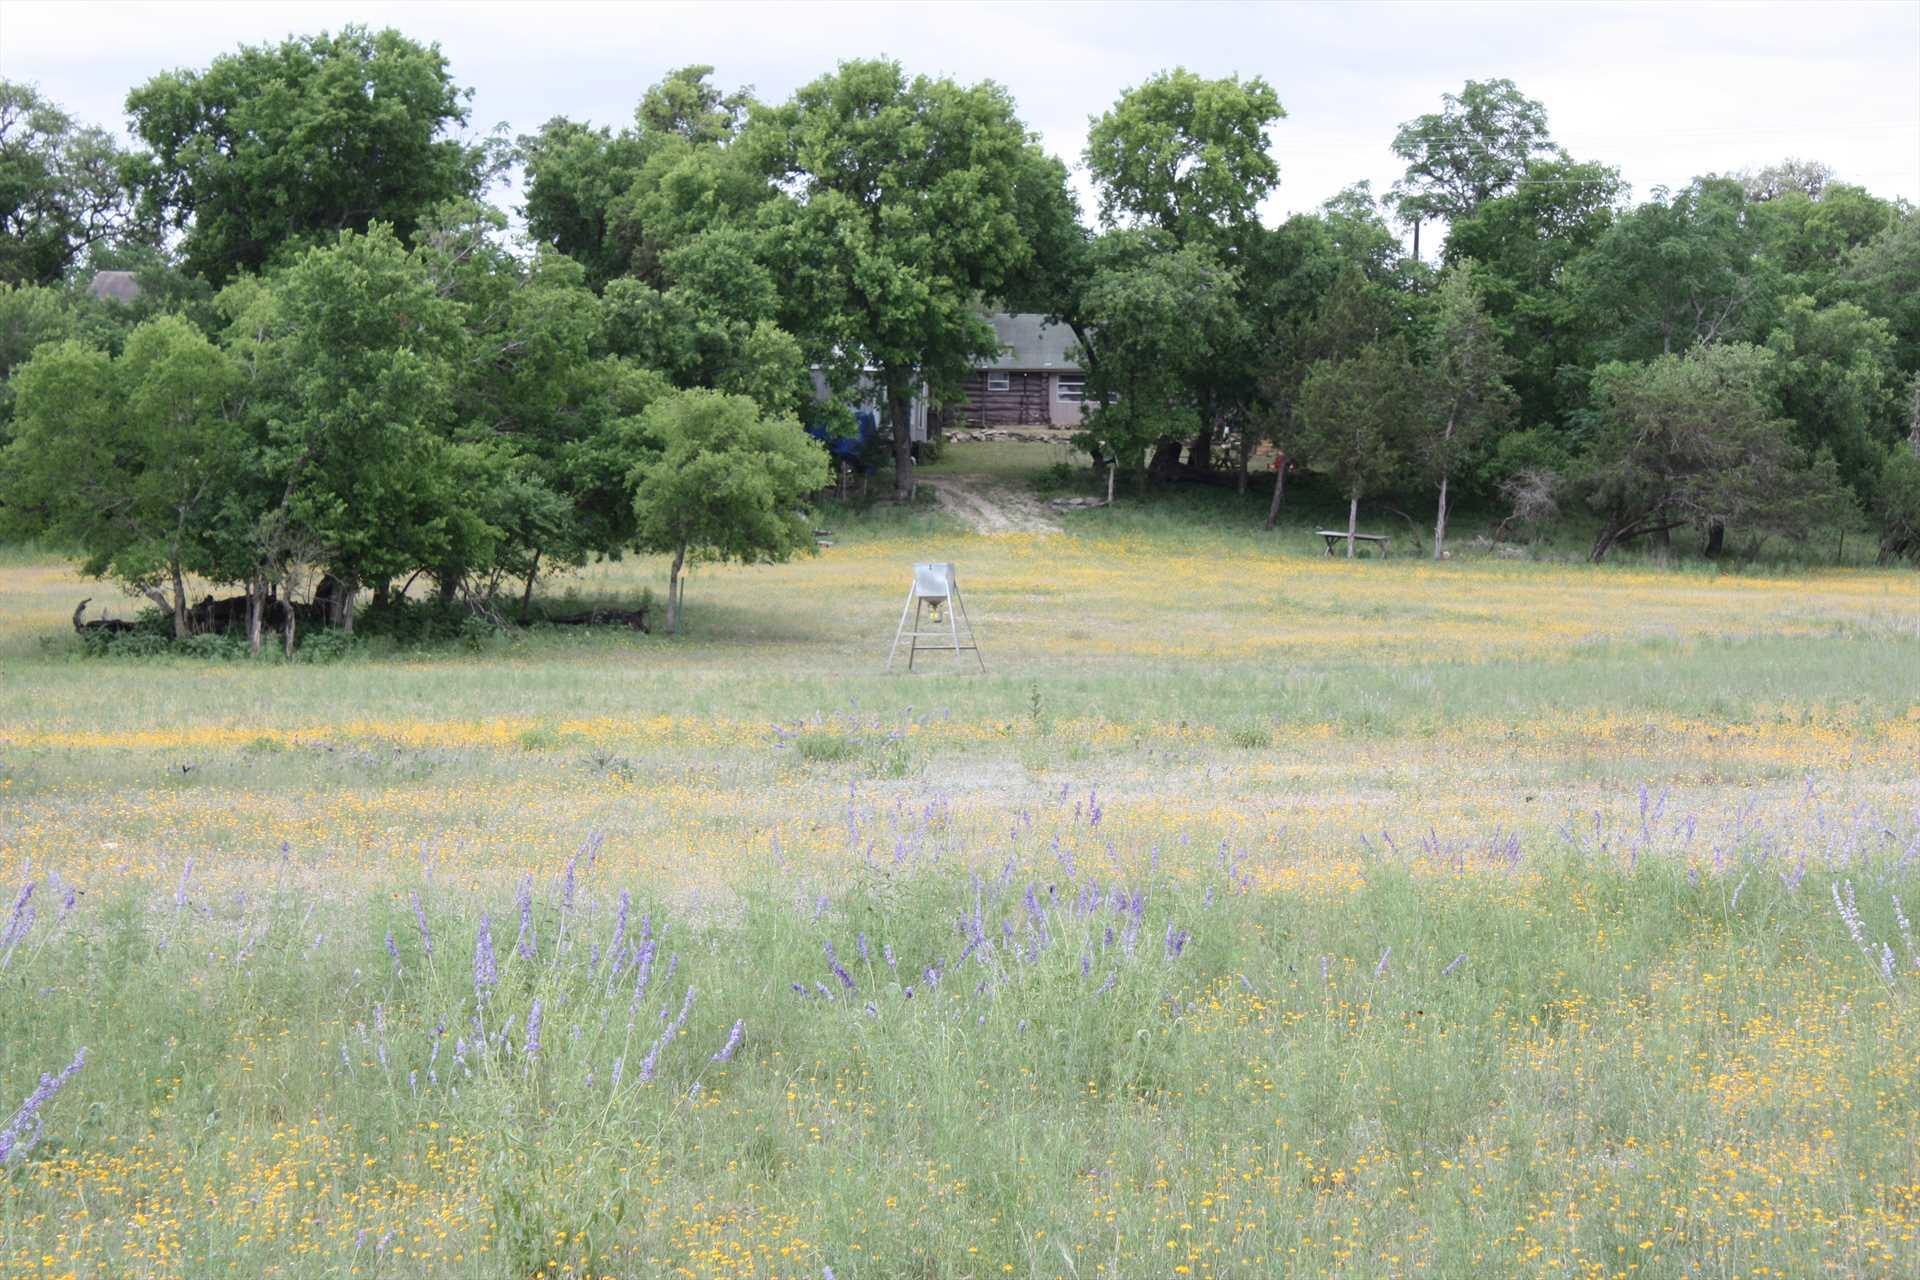 Behind the house is a spacious meadow, a wonderful place for kids and pets to romp and let off steam!